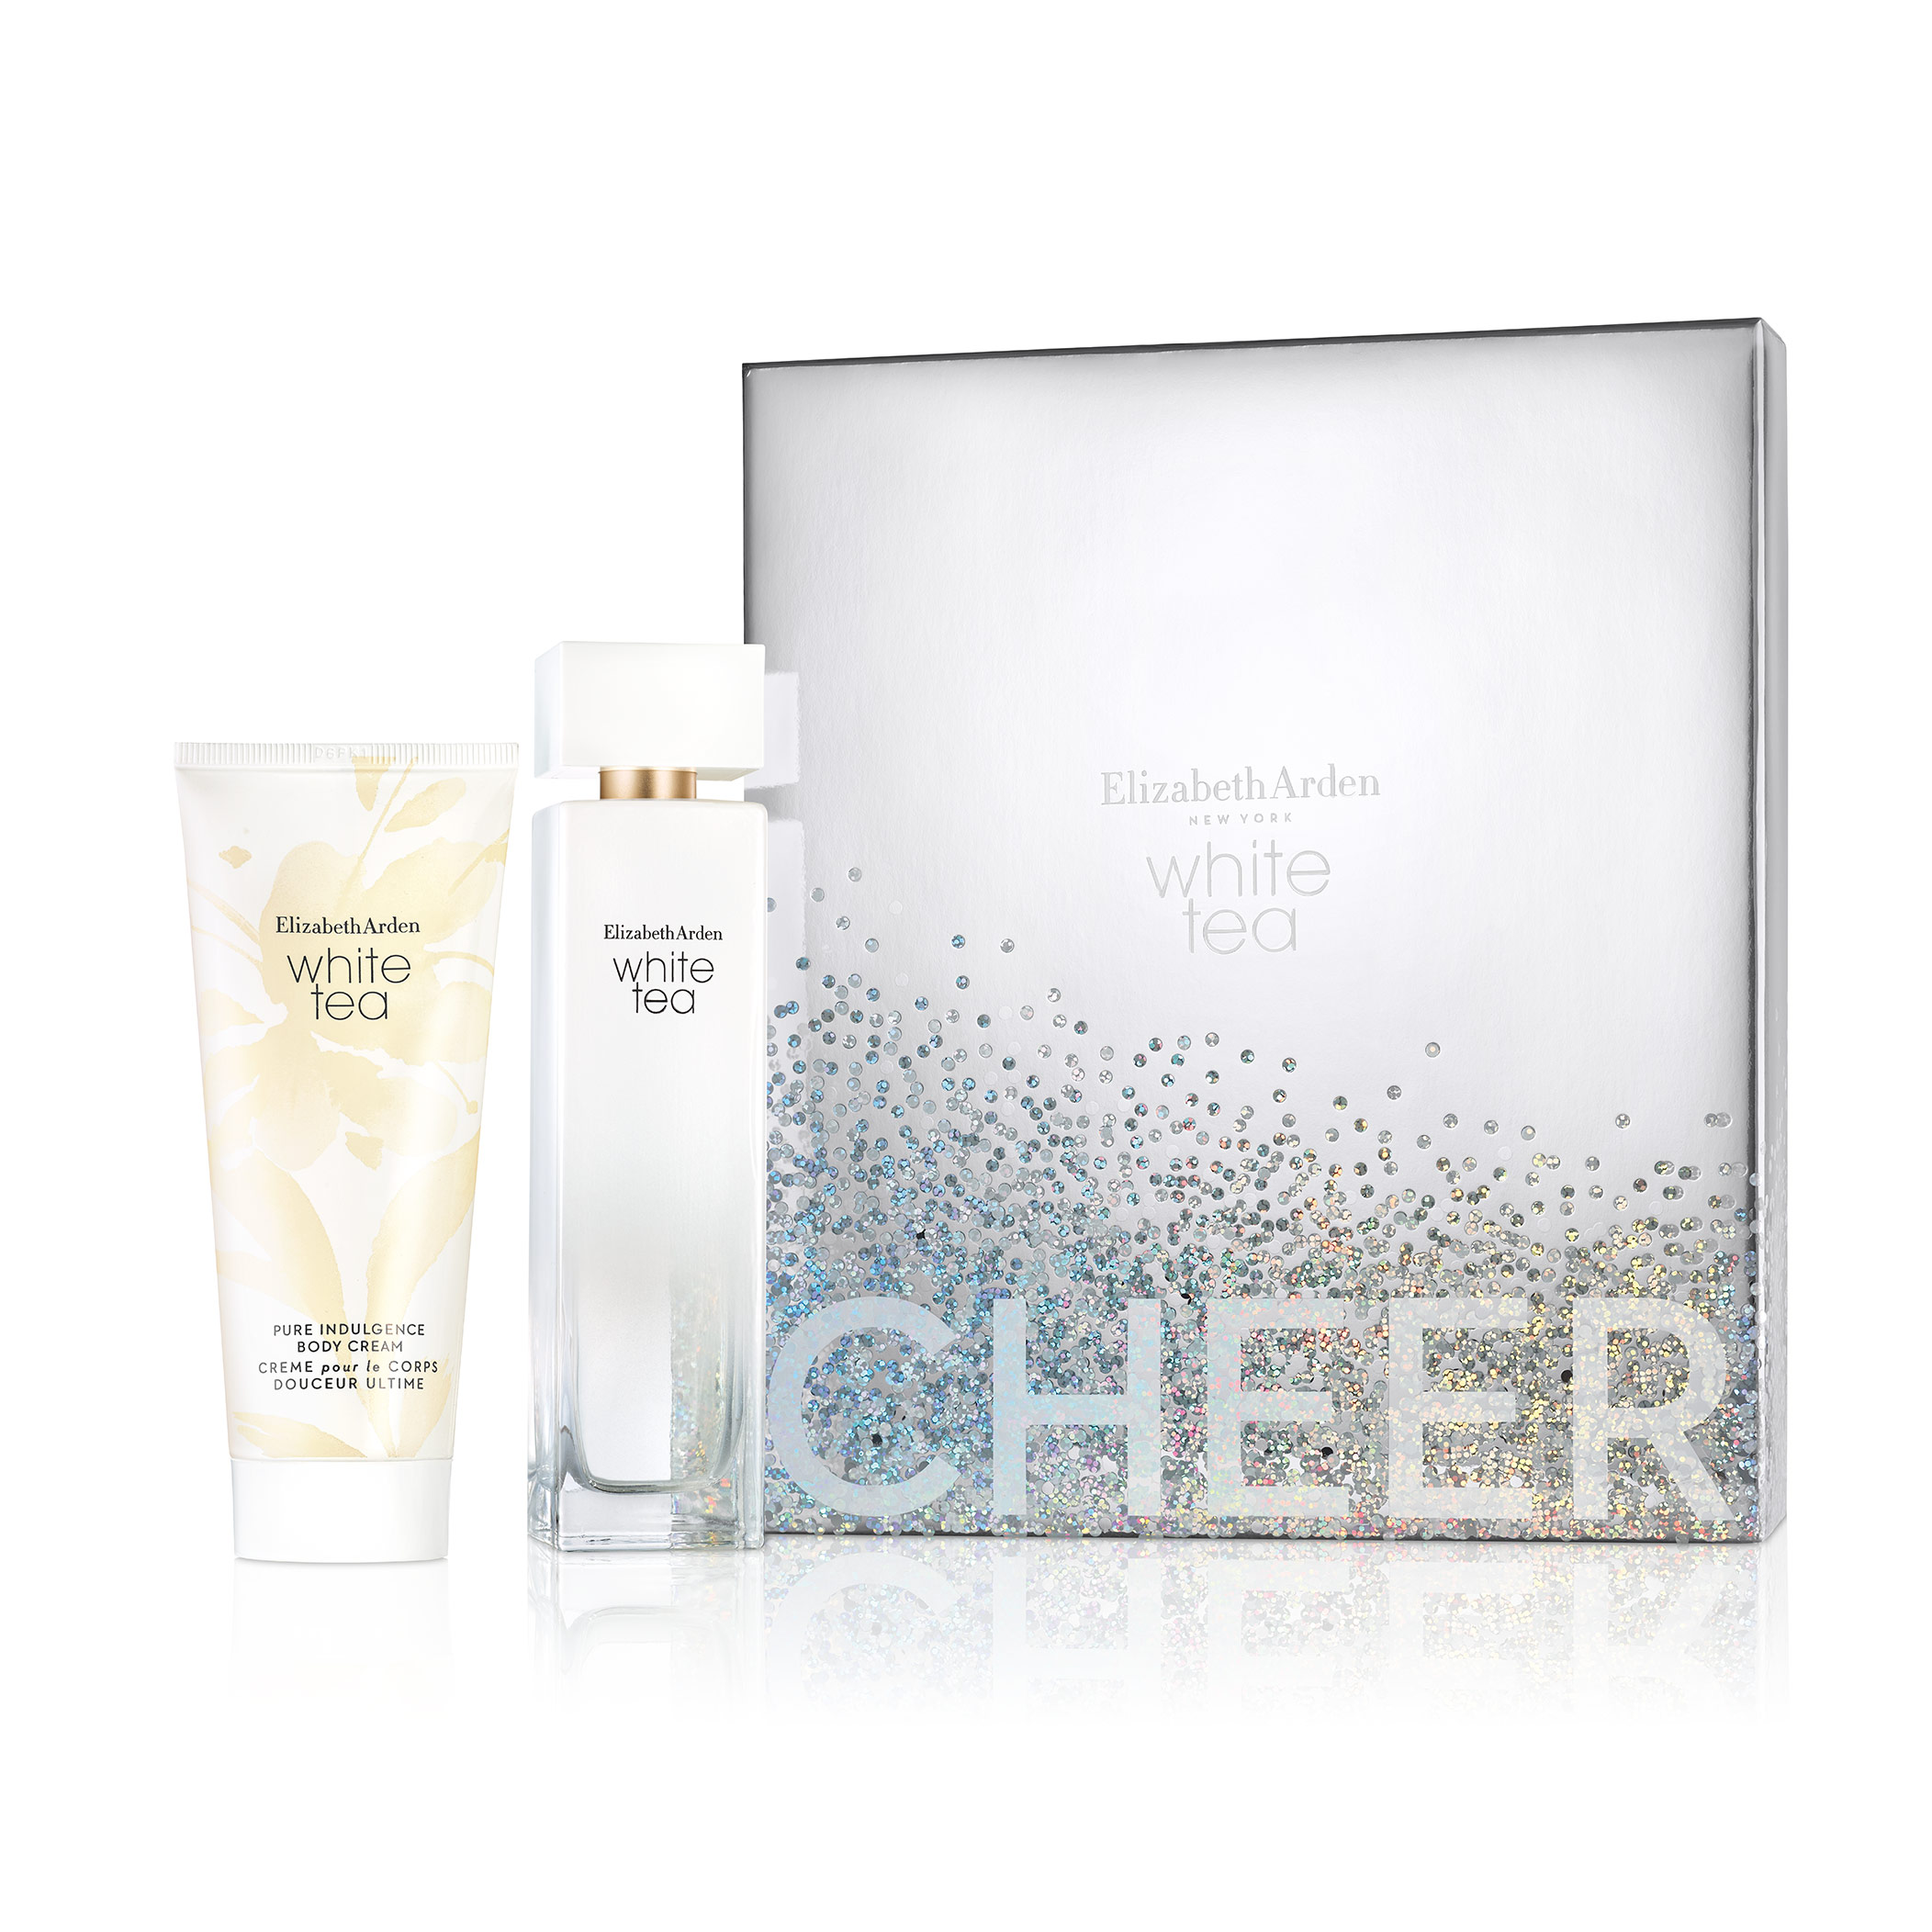 White Tea 3.3oz Eau De Toilette 2-Piece Set, (a $58 value), , large